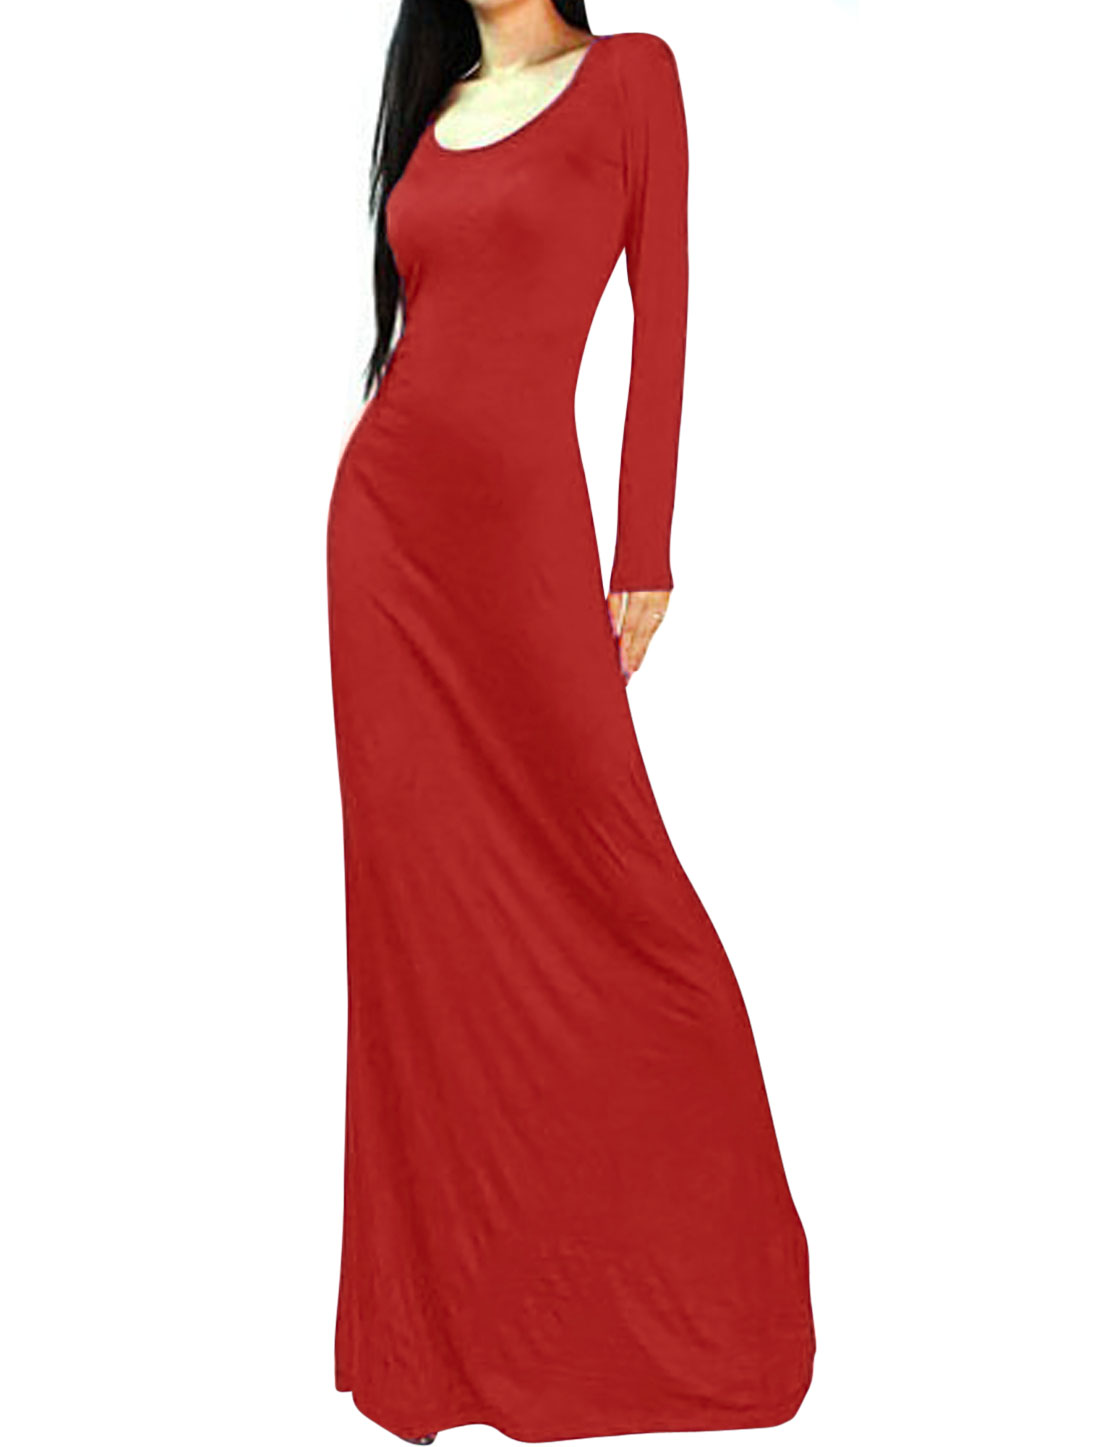 Lady Backless Design Full Sleeves Pullover Red Dress L